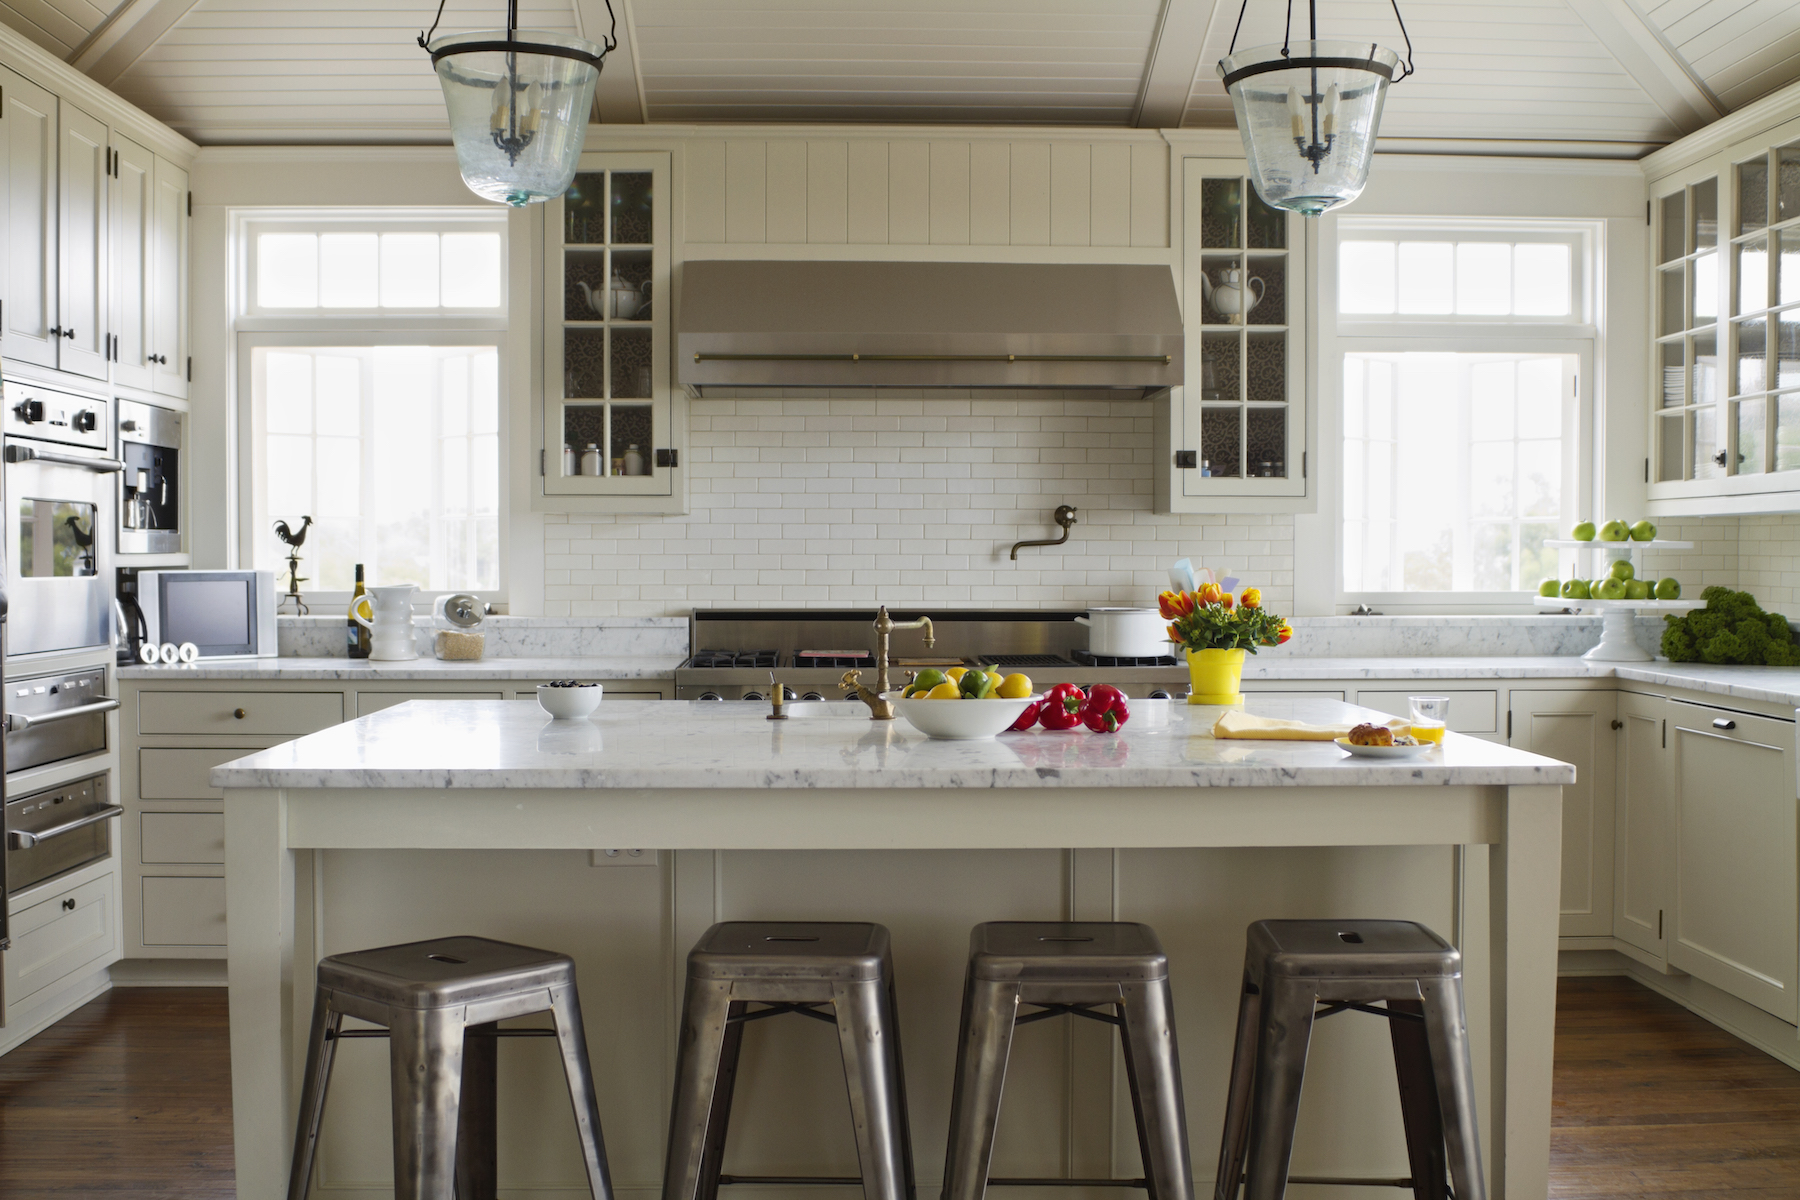 5 kitchen trends that will be huge in 2019 | real simple